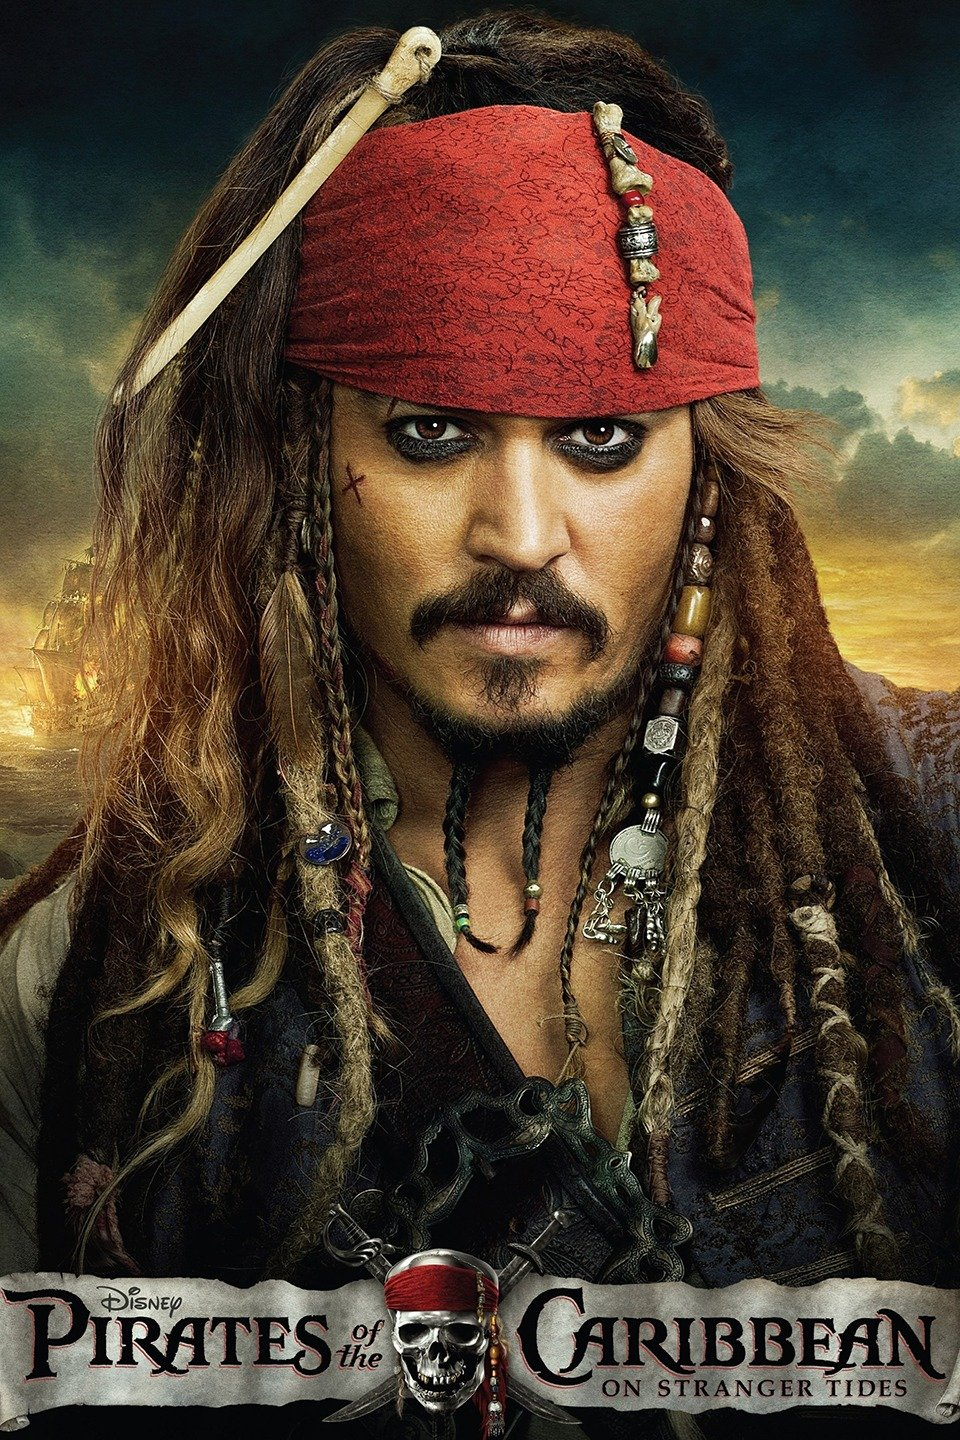 Pirates of the caribbean at worlds end 2007 bluray subtitle pirates of the caribbean at worlds end 2007 bluray subtitle indonesia reheart Choice Image